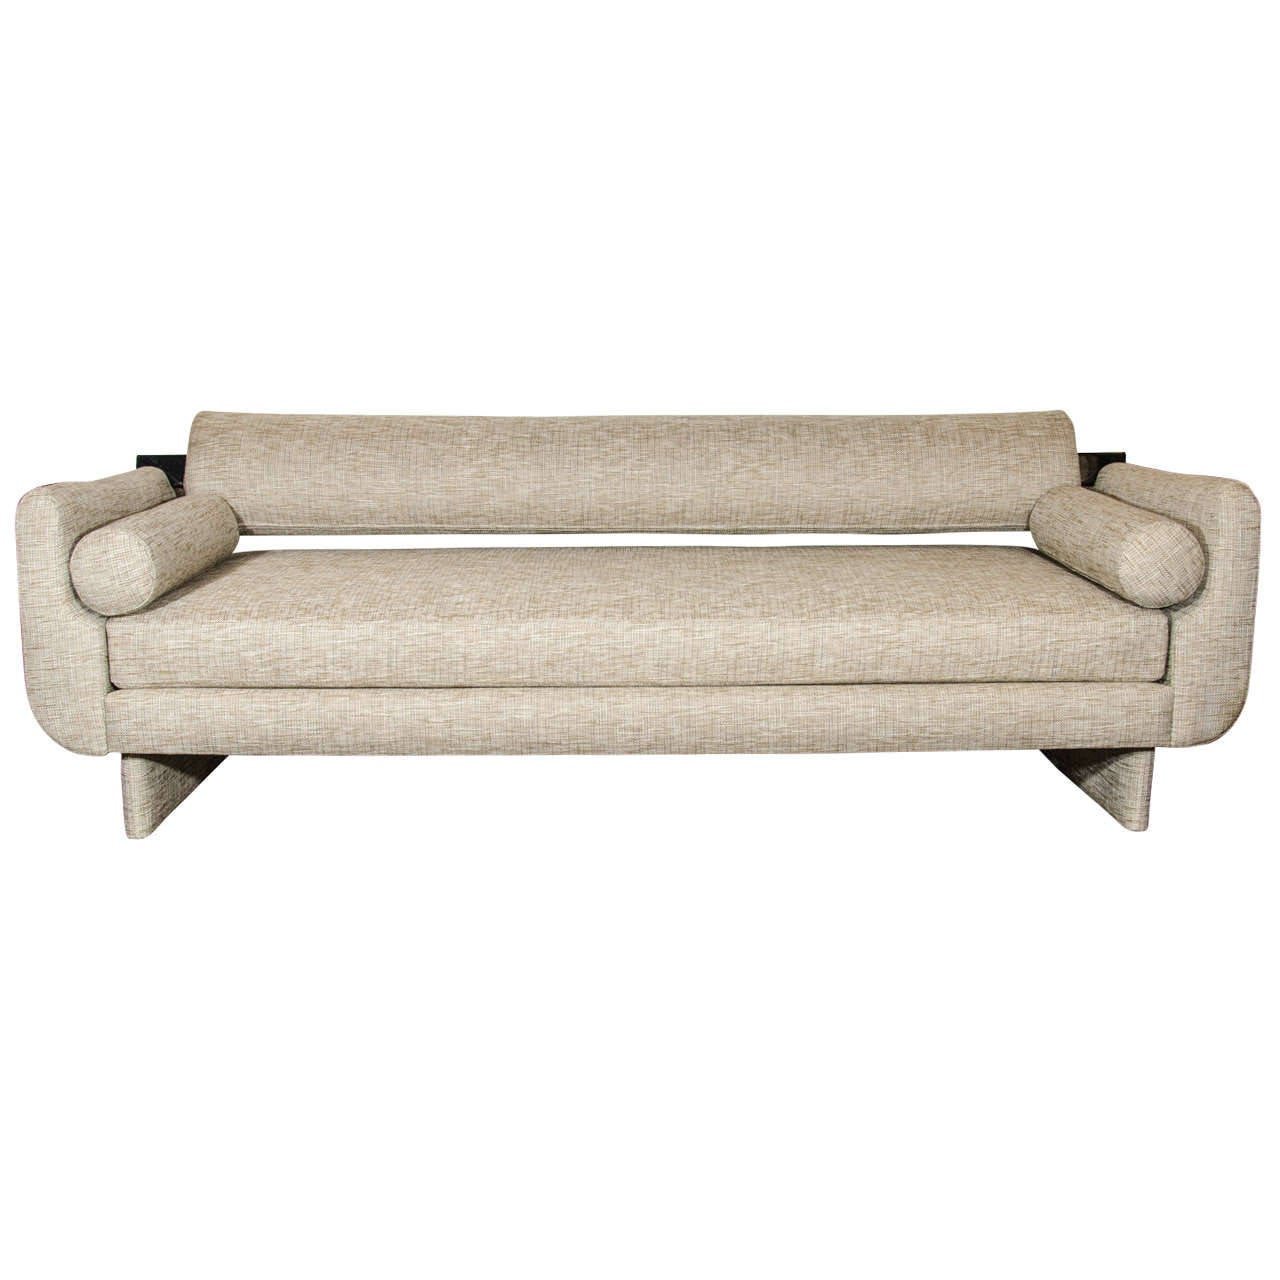 Ultra Modern Sofa Daybed With Streamline Design At 1stdibs